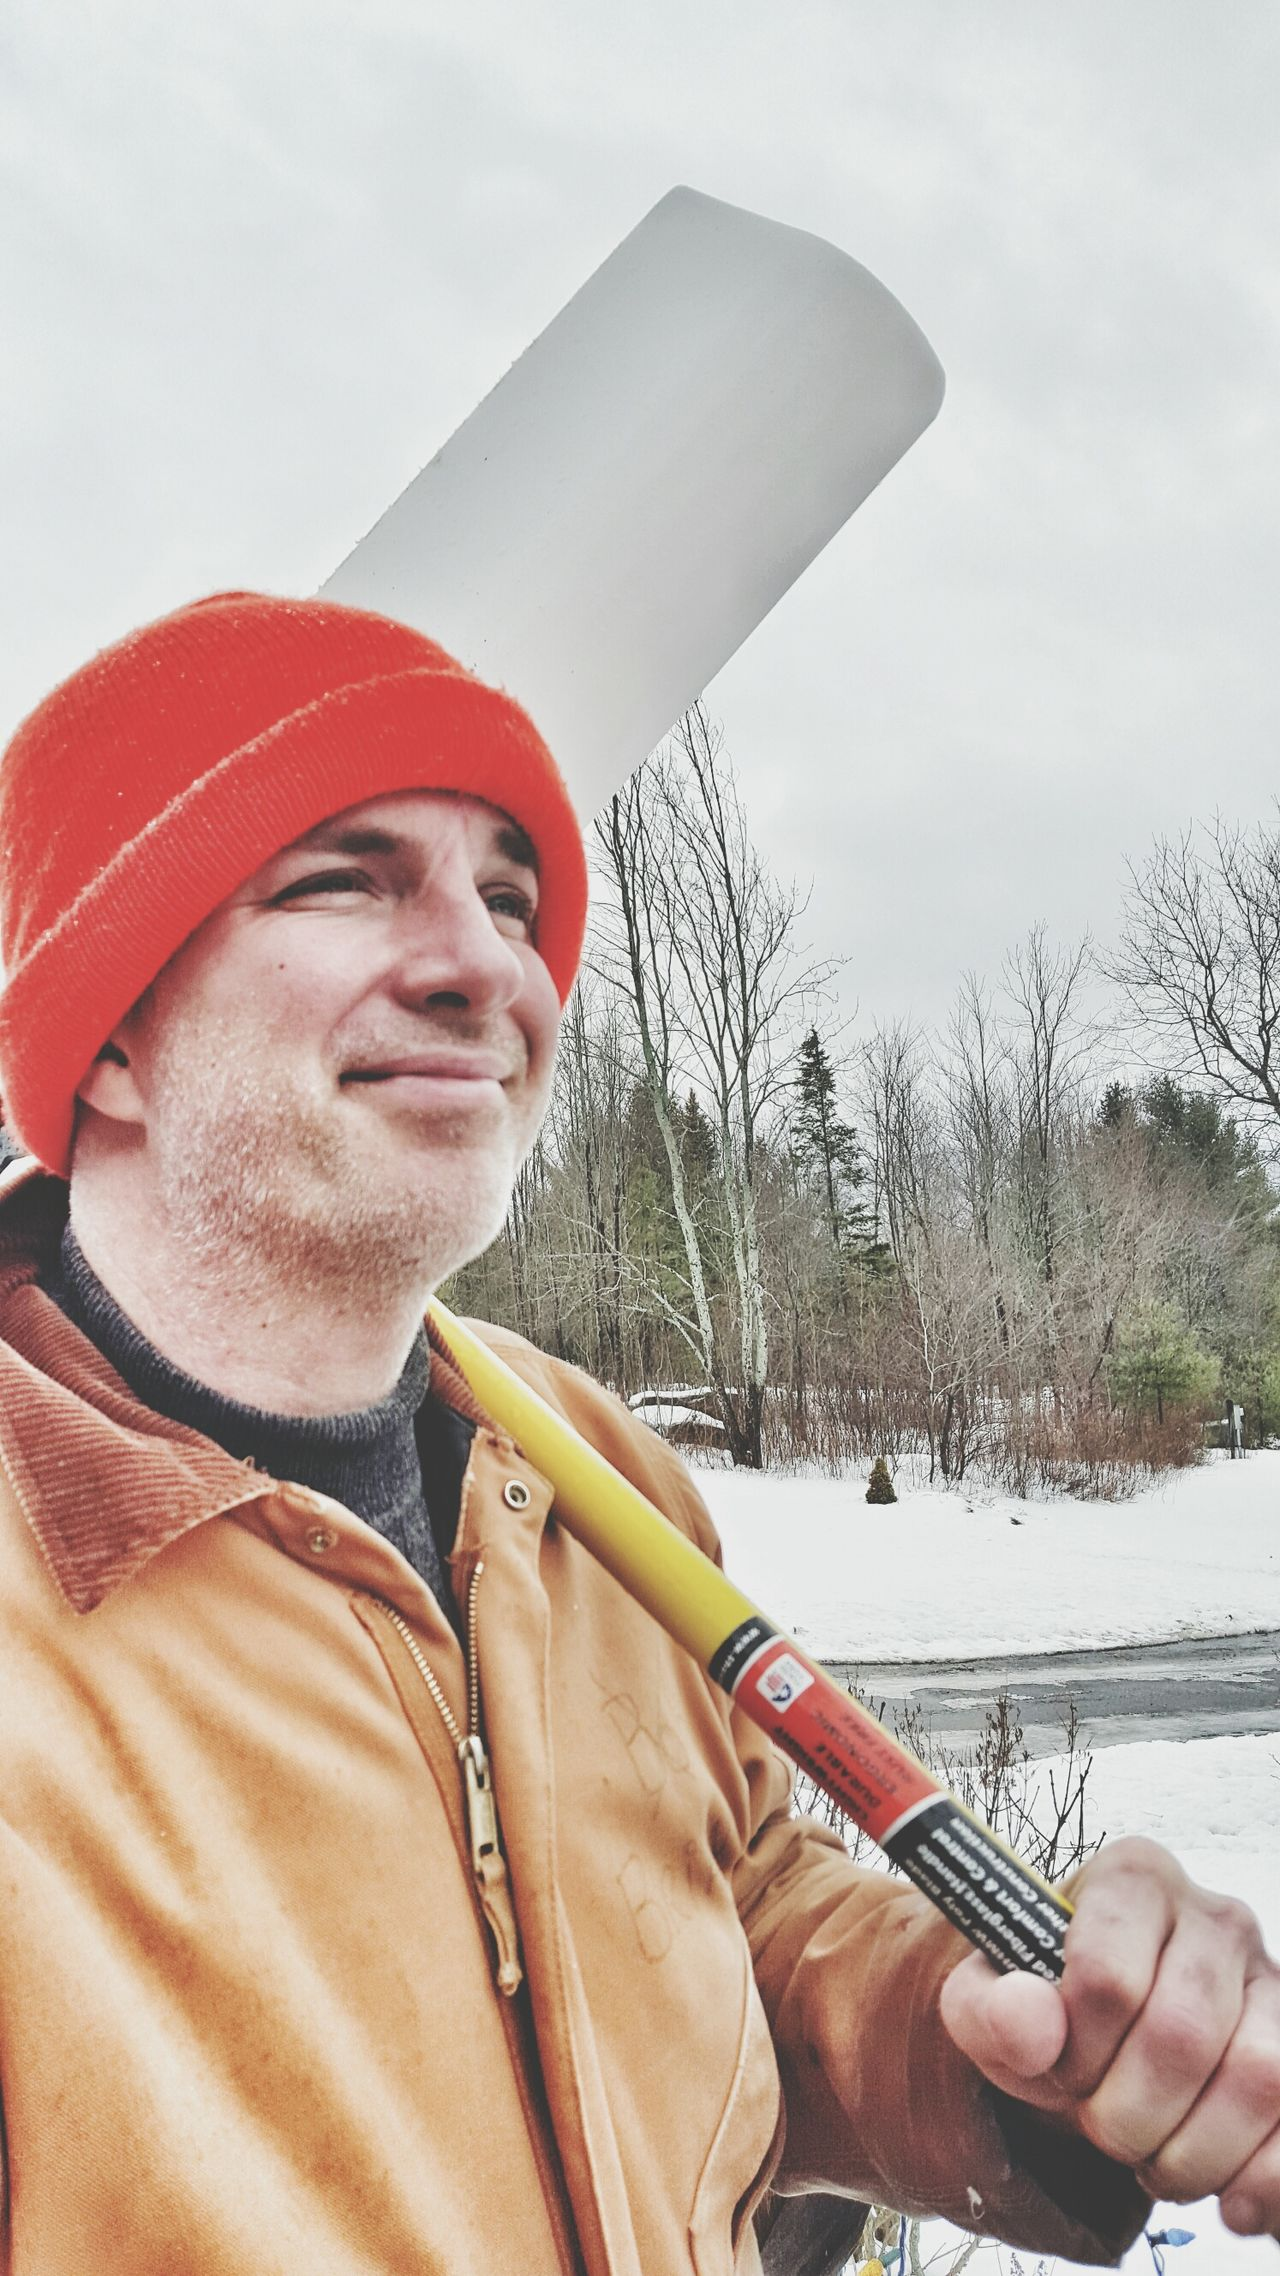 Smiling plow guy with big snow shovel to clear ice and snow in upstate New York. Shoveling Snow Plow Guy Smiling Work Ethics Copy Space Hard Work Wintertime Man At Work Work Suit Adirondacks Snow And Ice  Snow In Background Orange Hat Unshaved Cold Weather Overcast Candid Real People Man Side Profile Working Looking Up Close-up Plowing The Snow Ski Cap